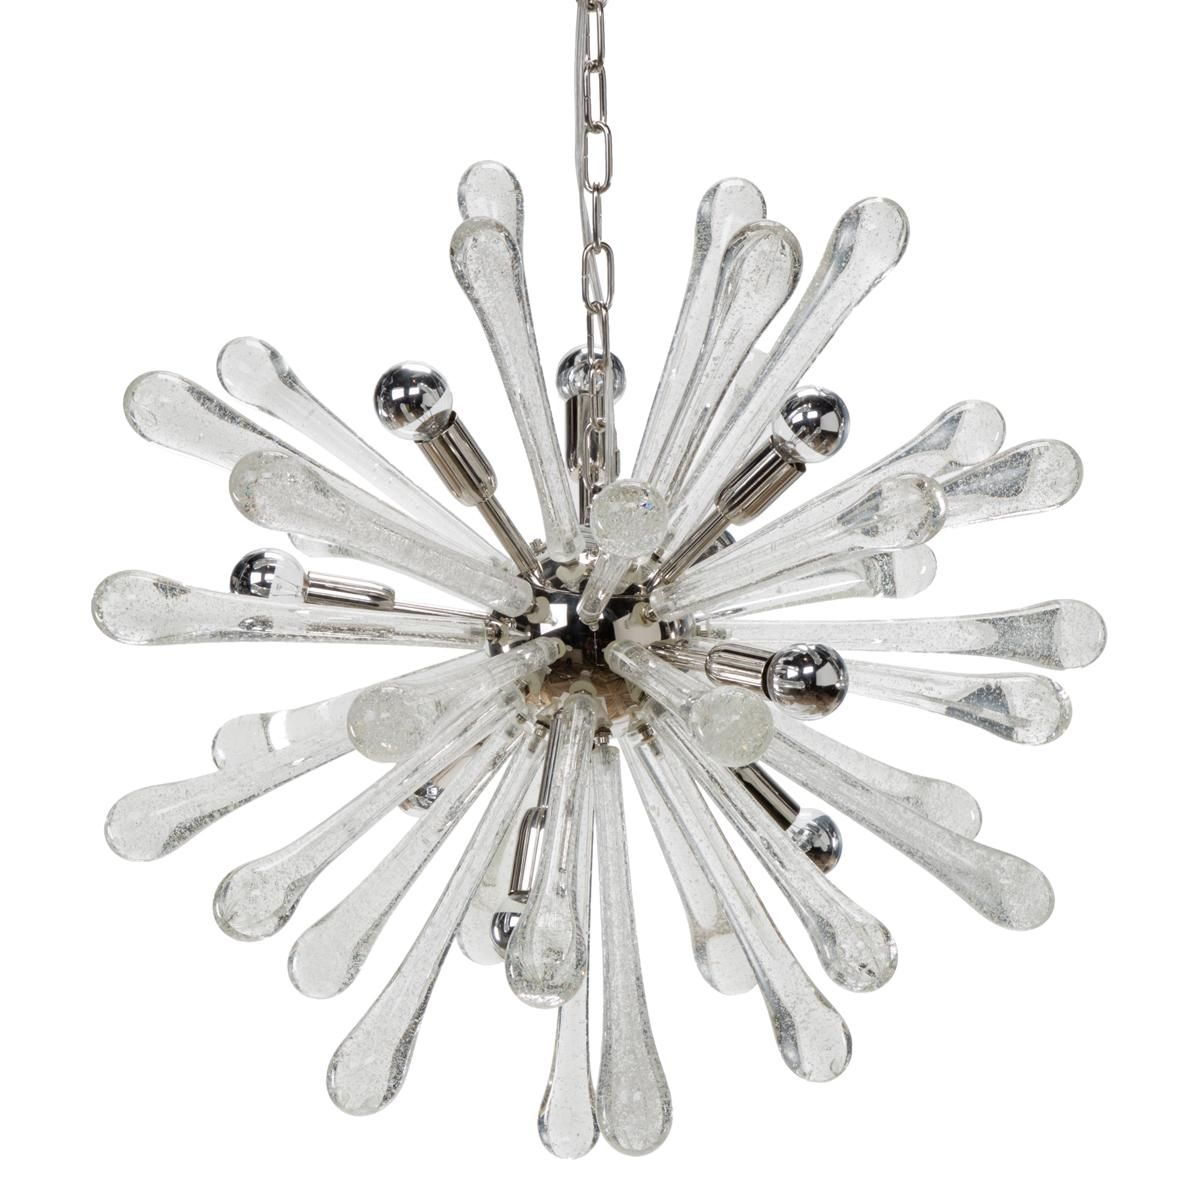 murano glass starburst chandelier 39 murano style glass droplets explode from a center ball with - Starburst Chandelier